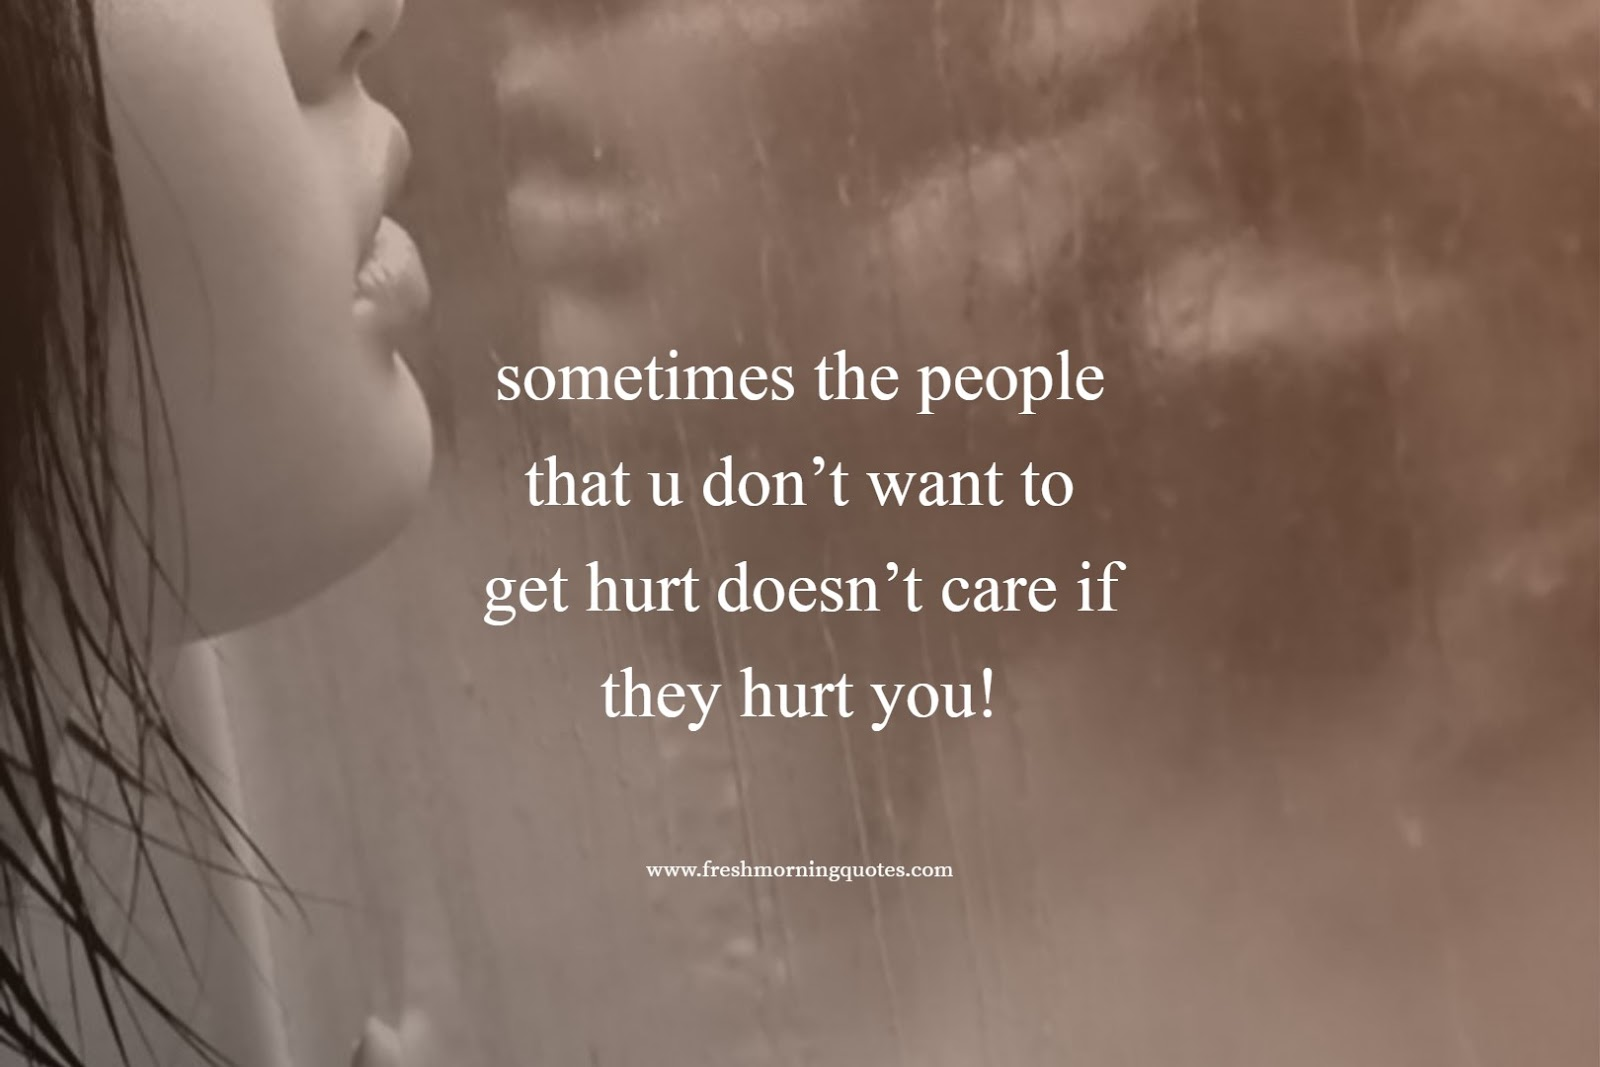 sometimes people gets you hurt